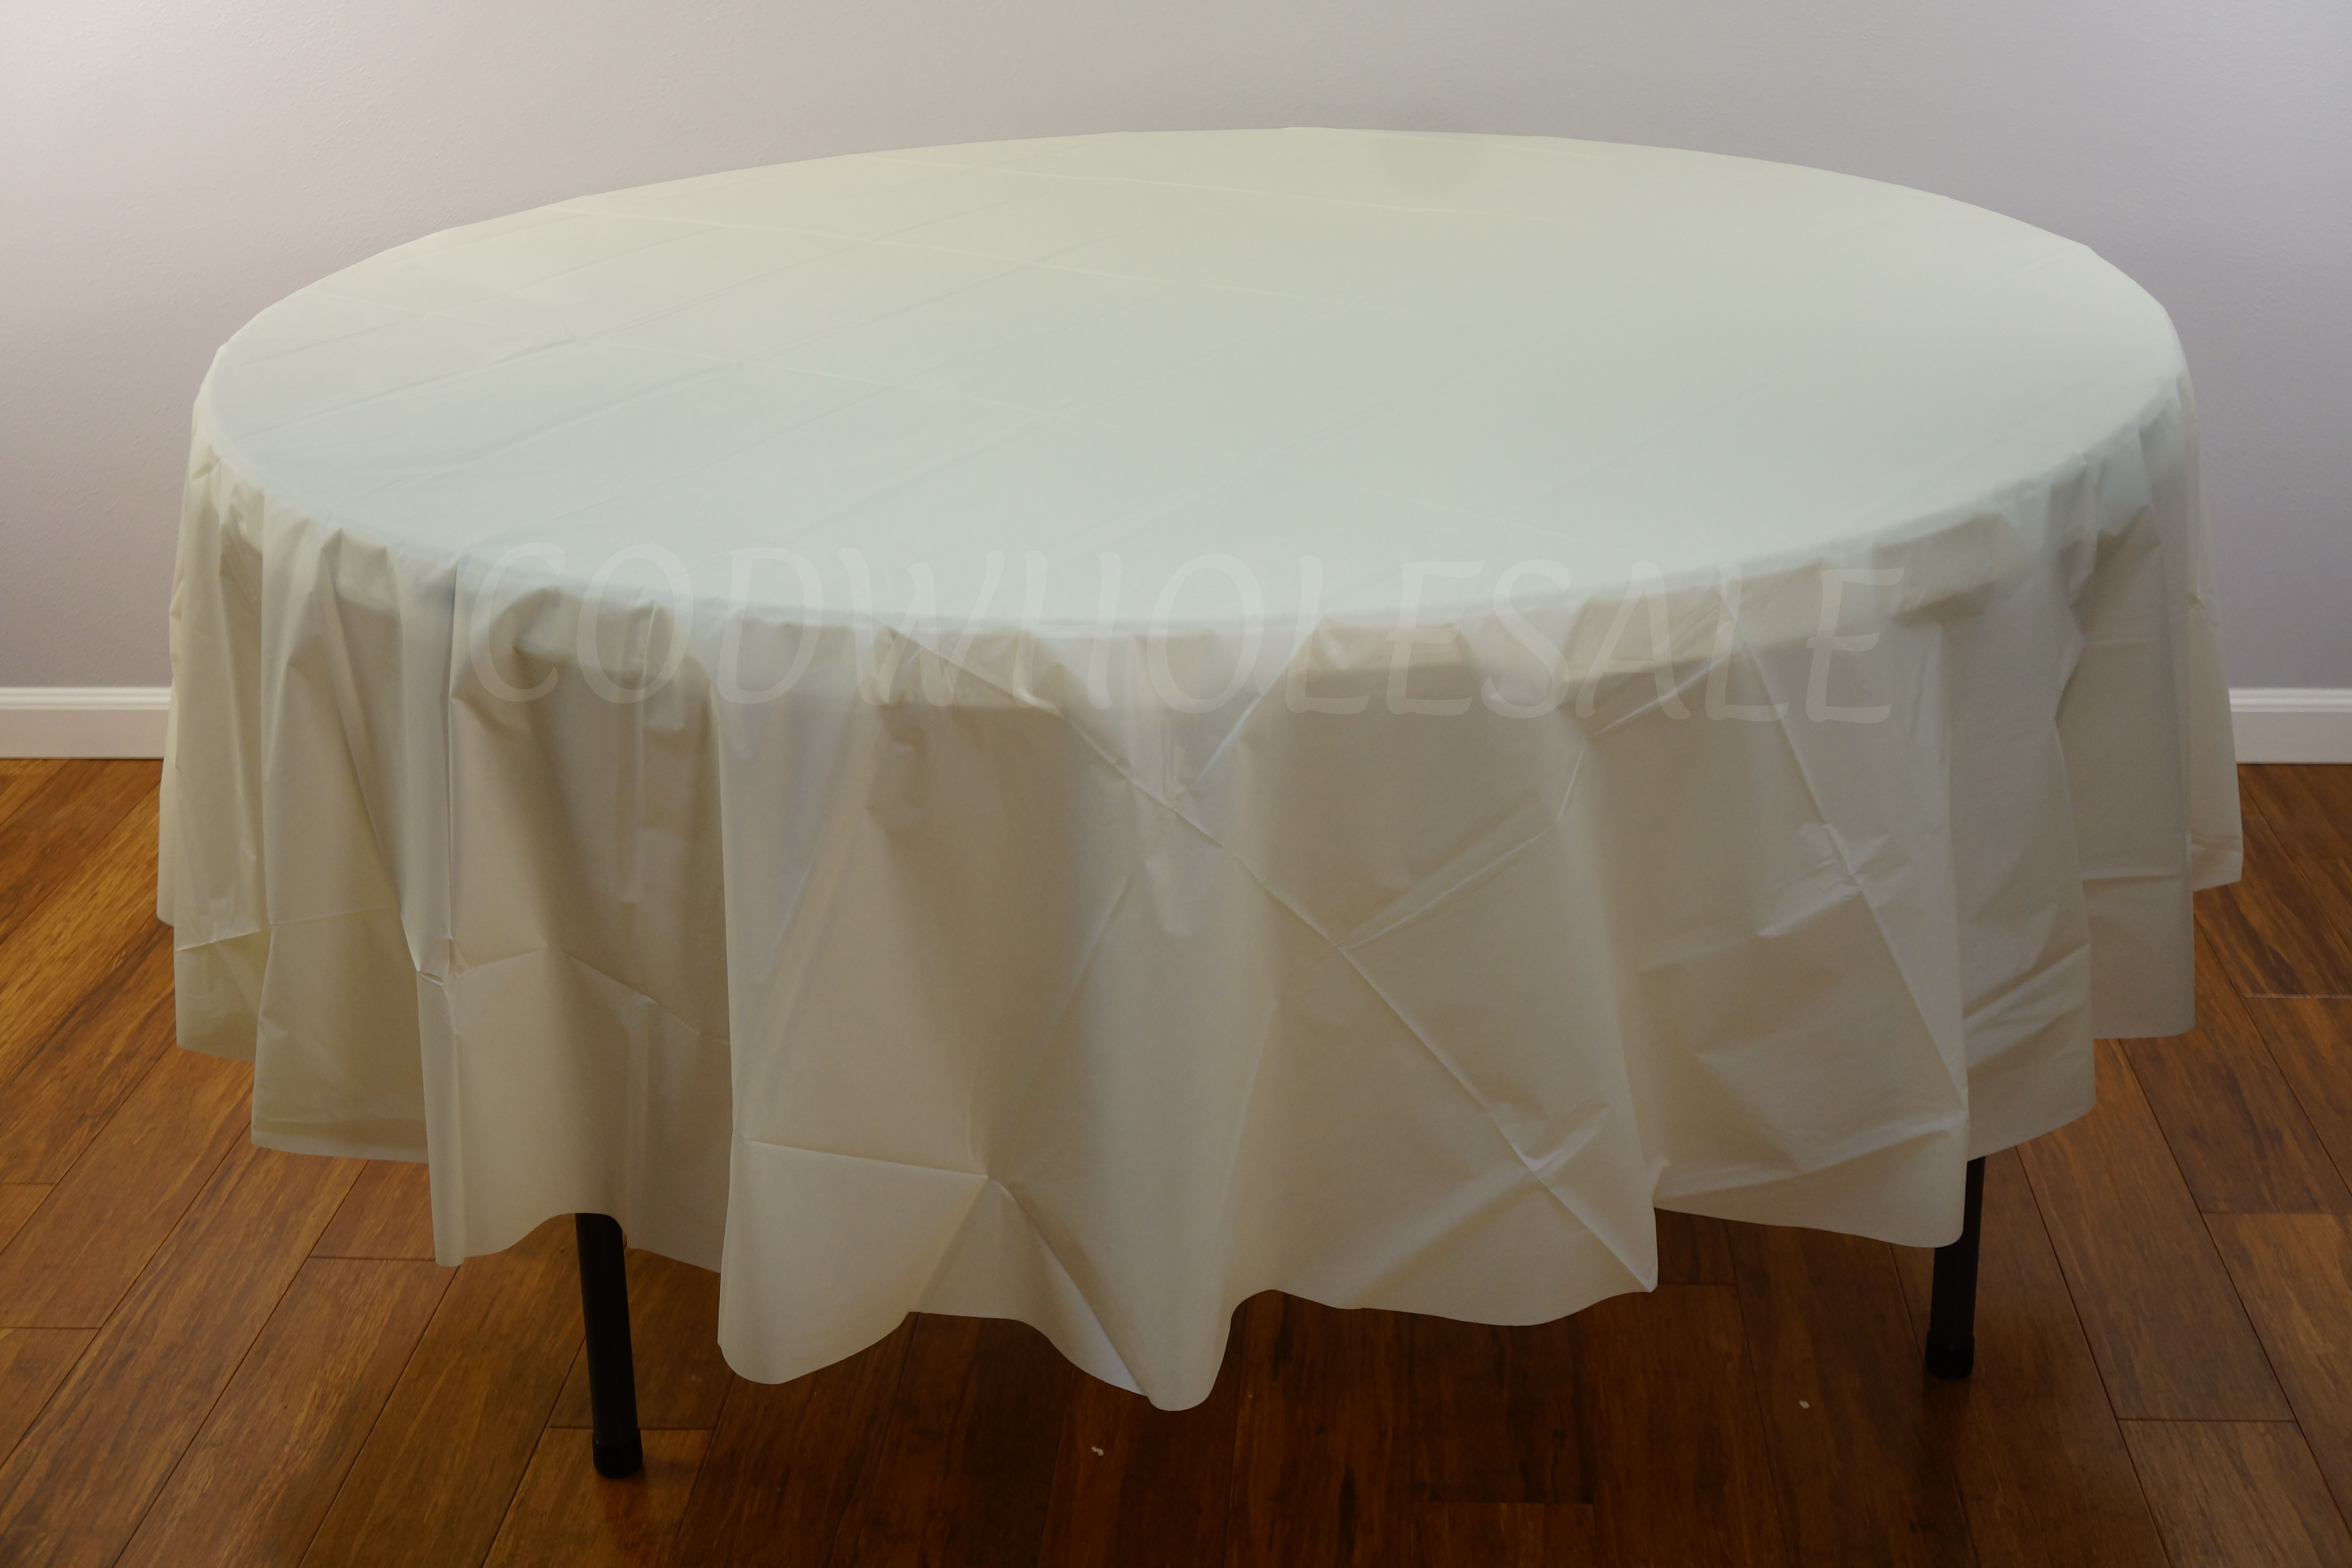 Ivory 96 Round Plastic Tablecloth Tc96iv, 60 Inch Round Tablecloth Disposable